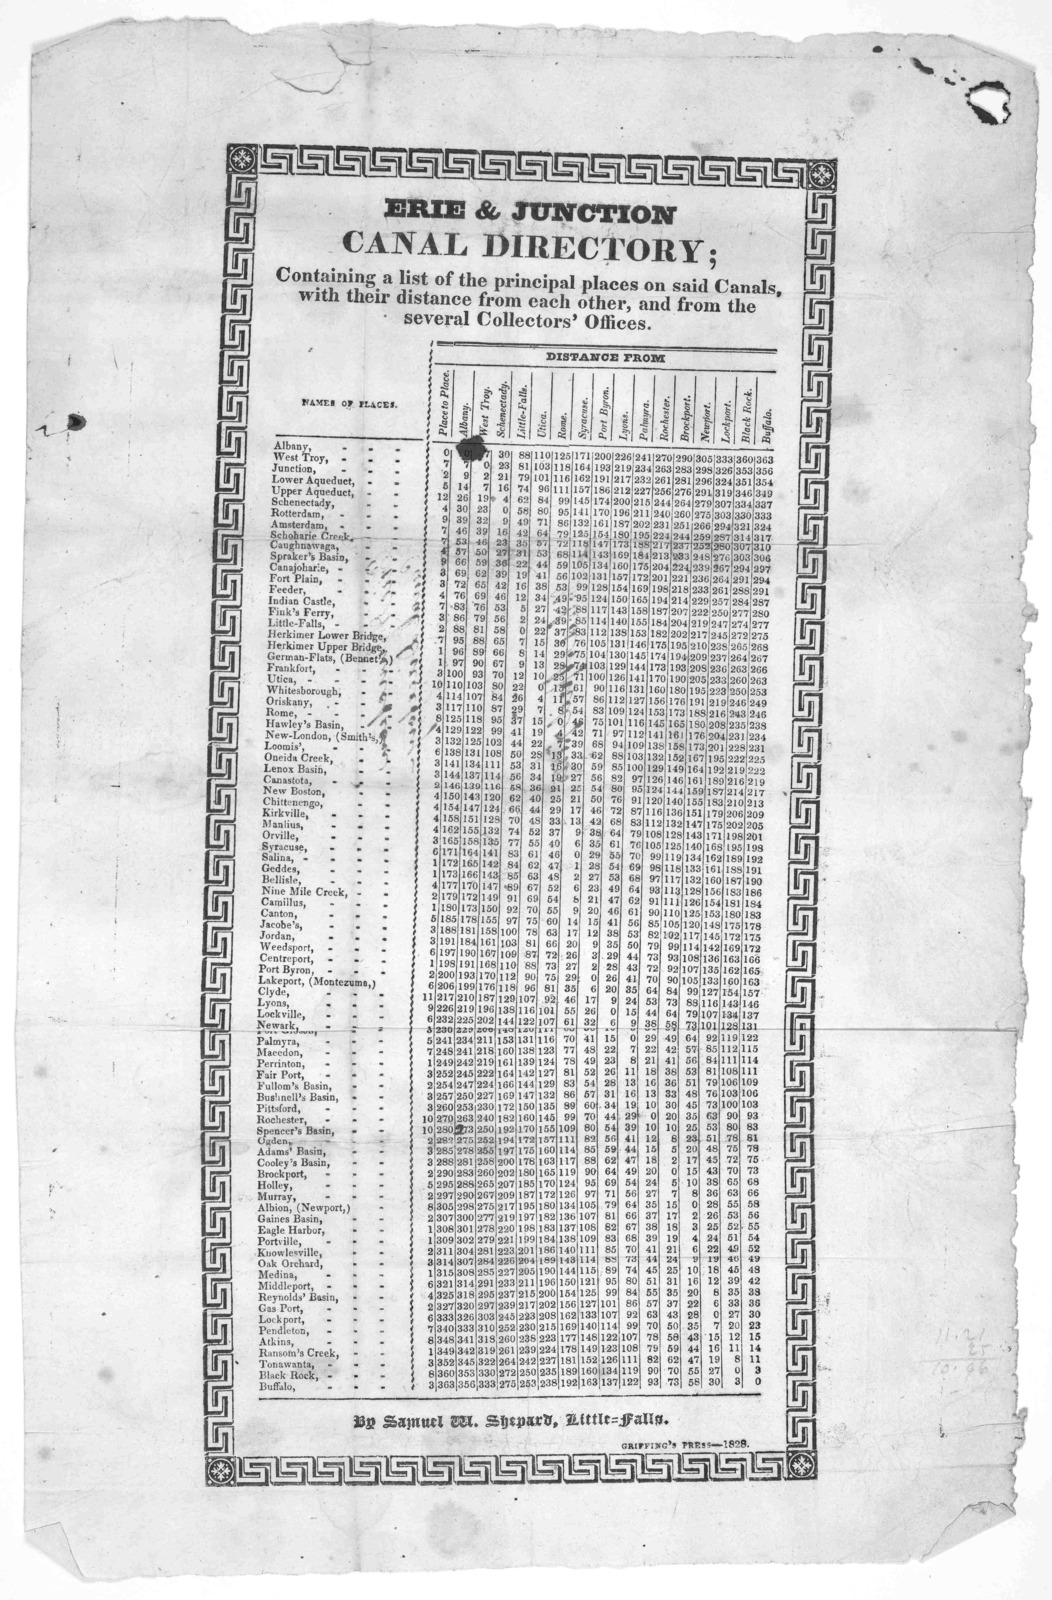 Erie & junction canal directory; containing a list of the principal places on said canals, with their distance from each other, and from the several collectors' office. By Samuel W. Shepard, Little-Falls. Griffing's Press-1828.